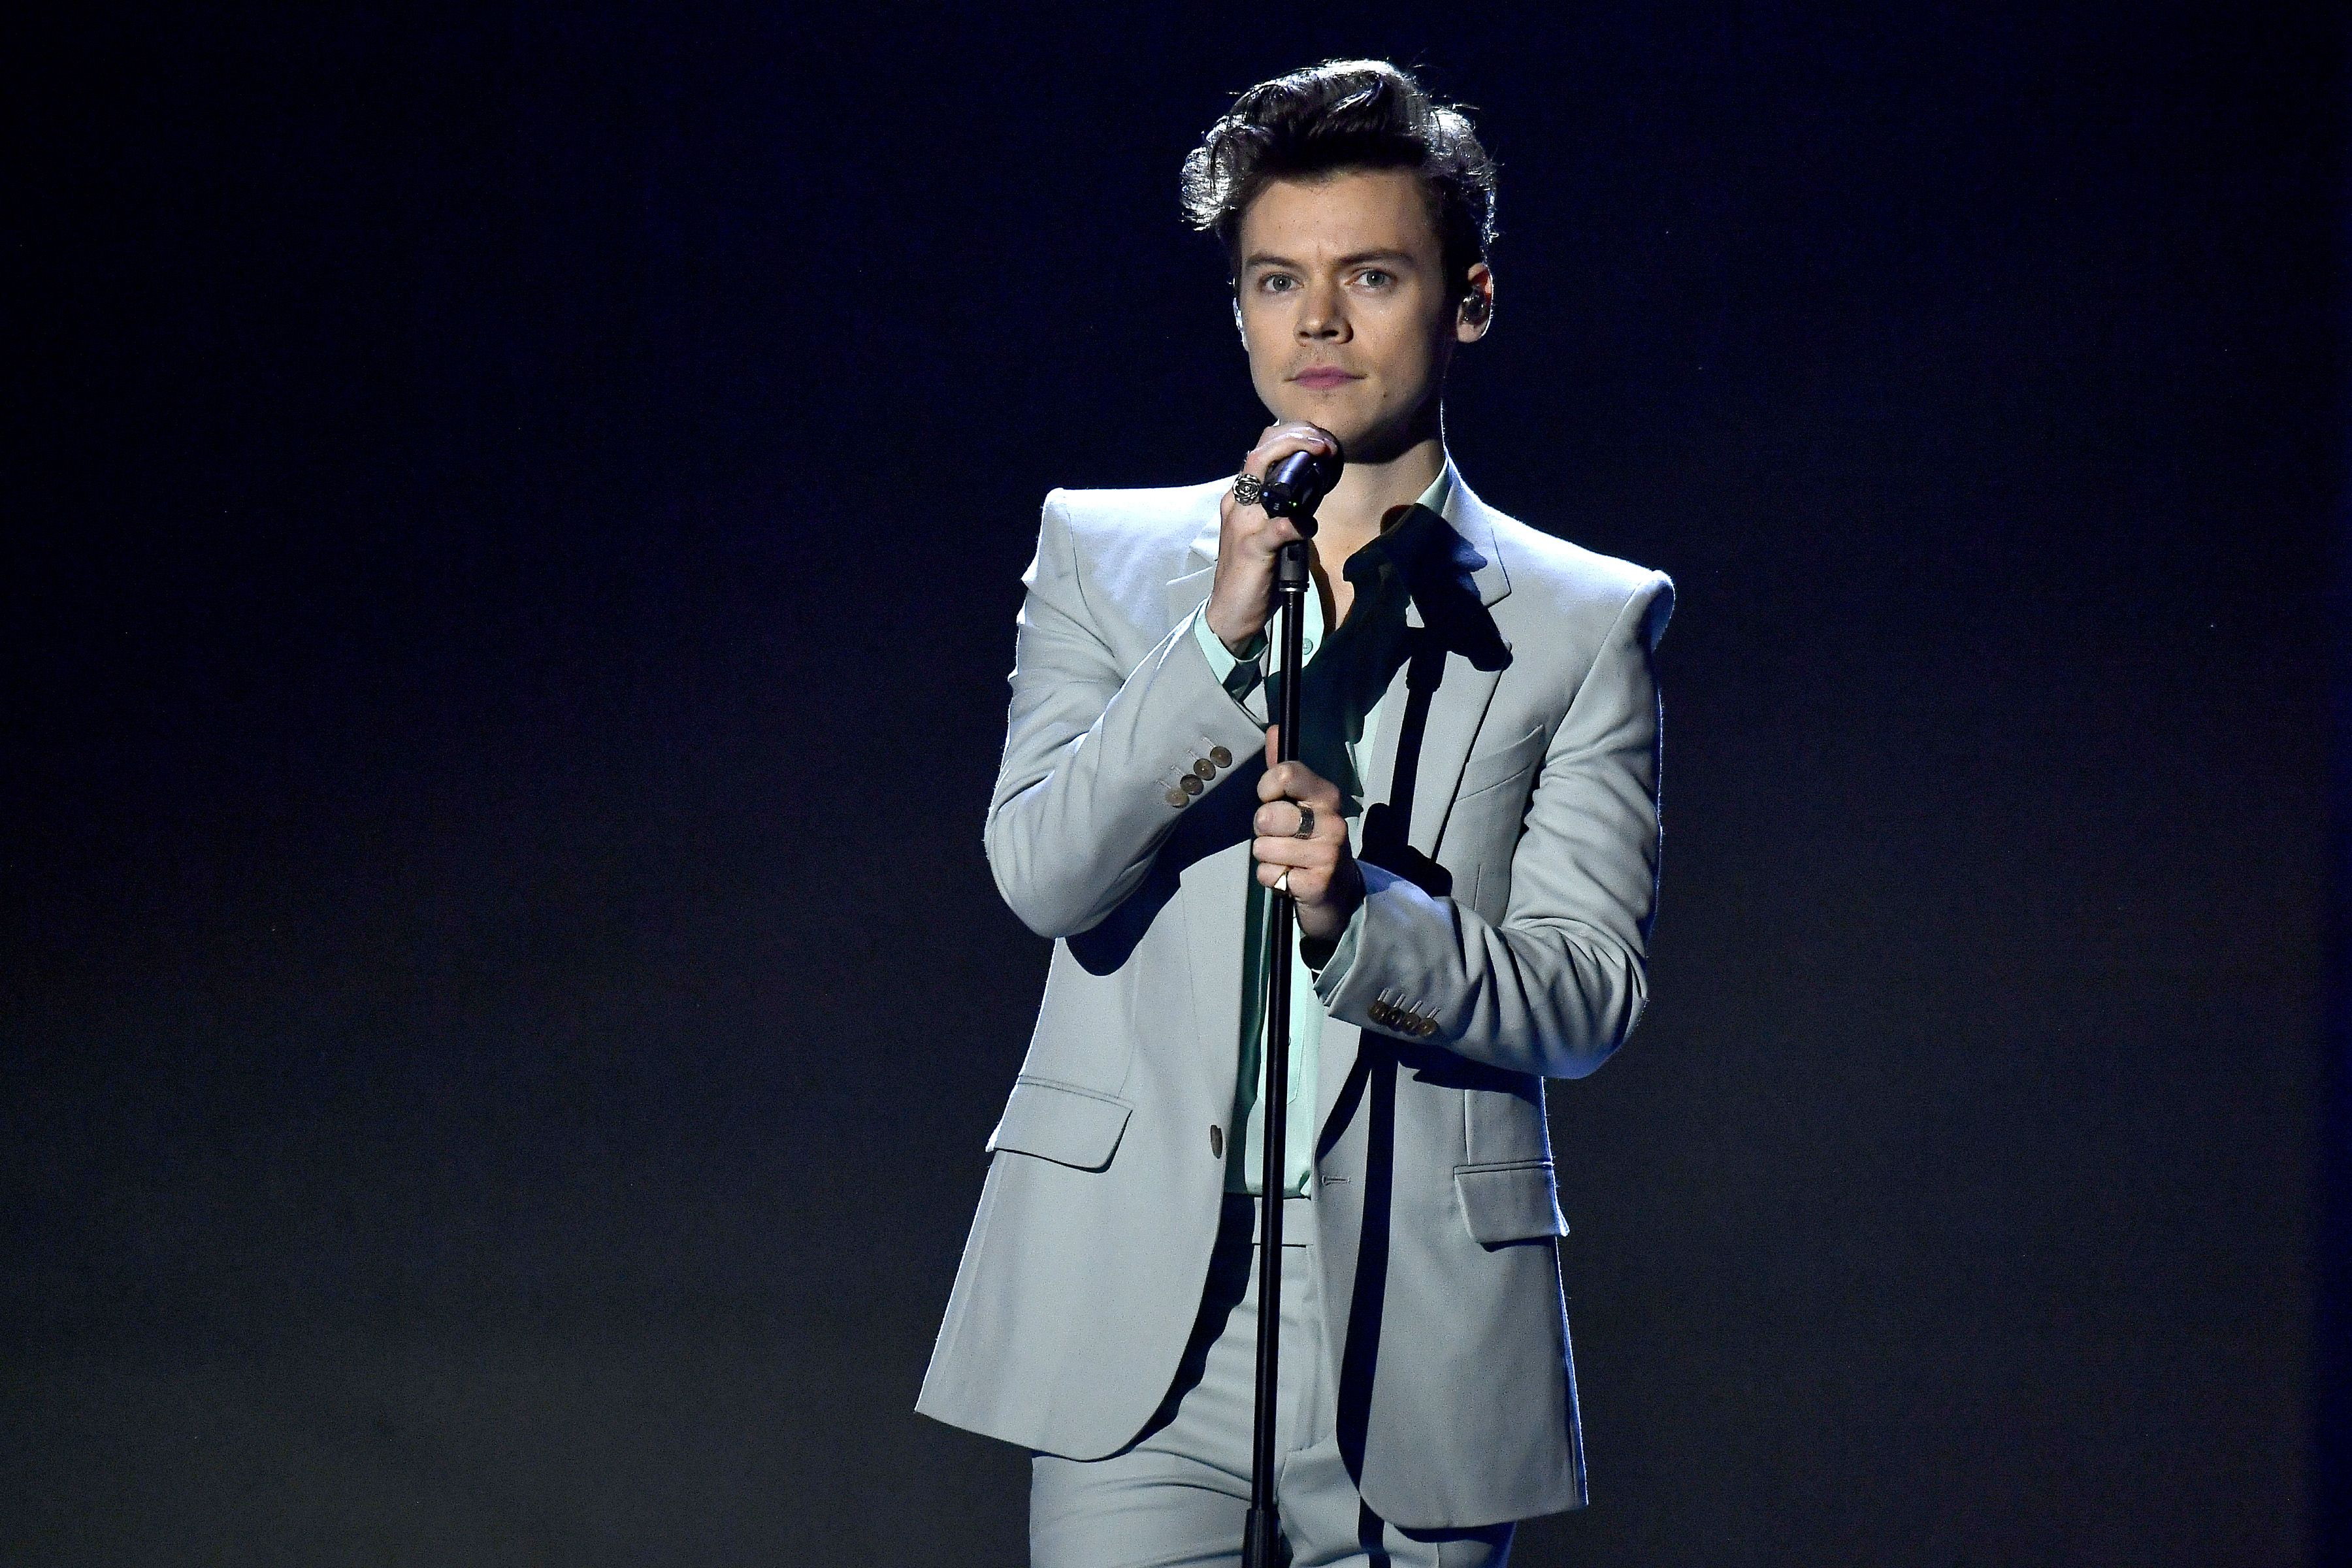 Rejoice: Harry Styles Says He's Been Writing New Songs While Social Distancing